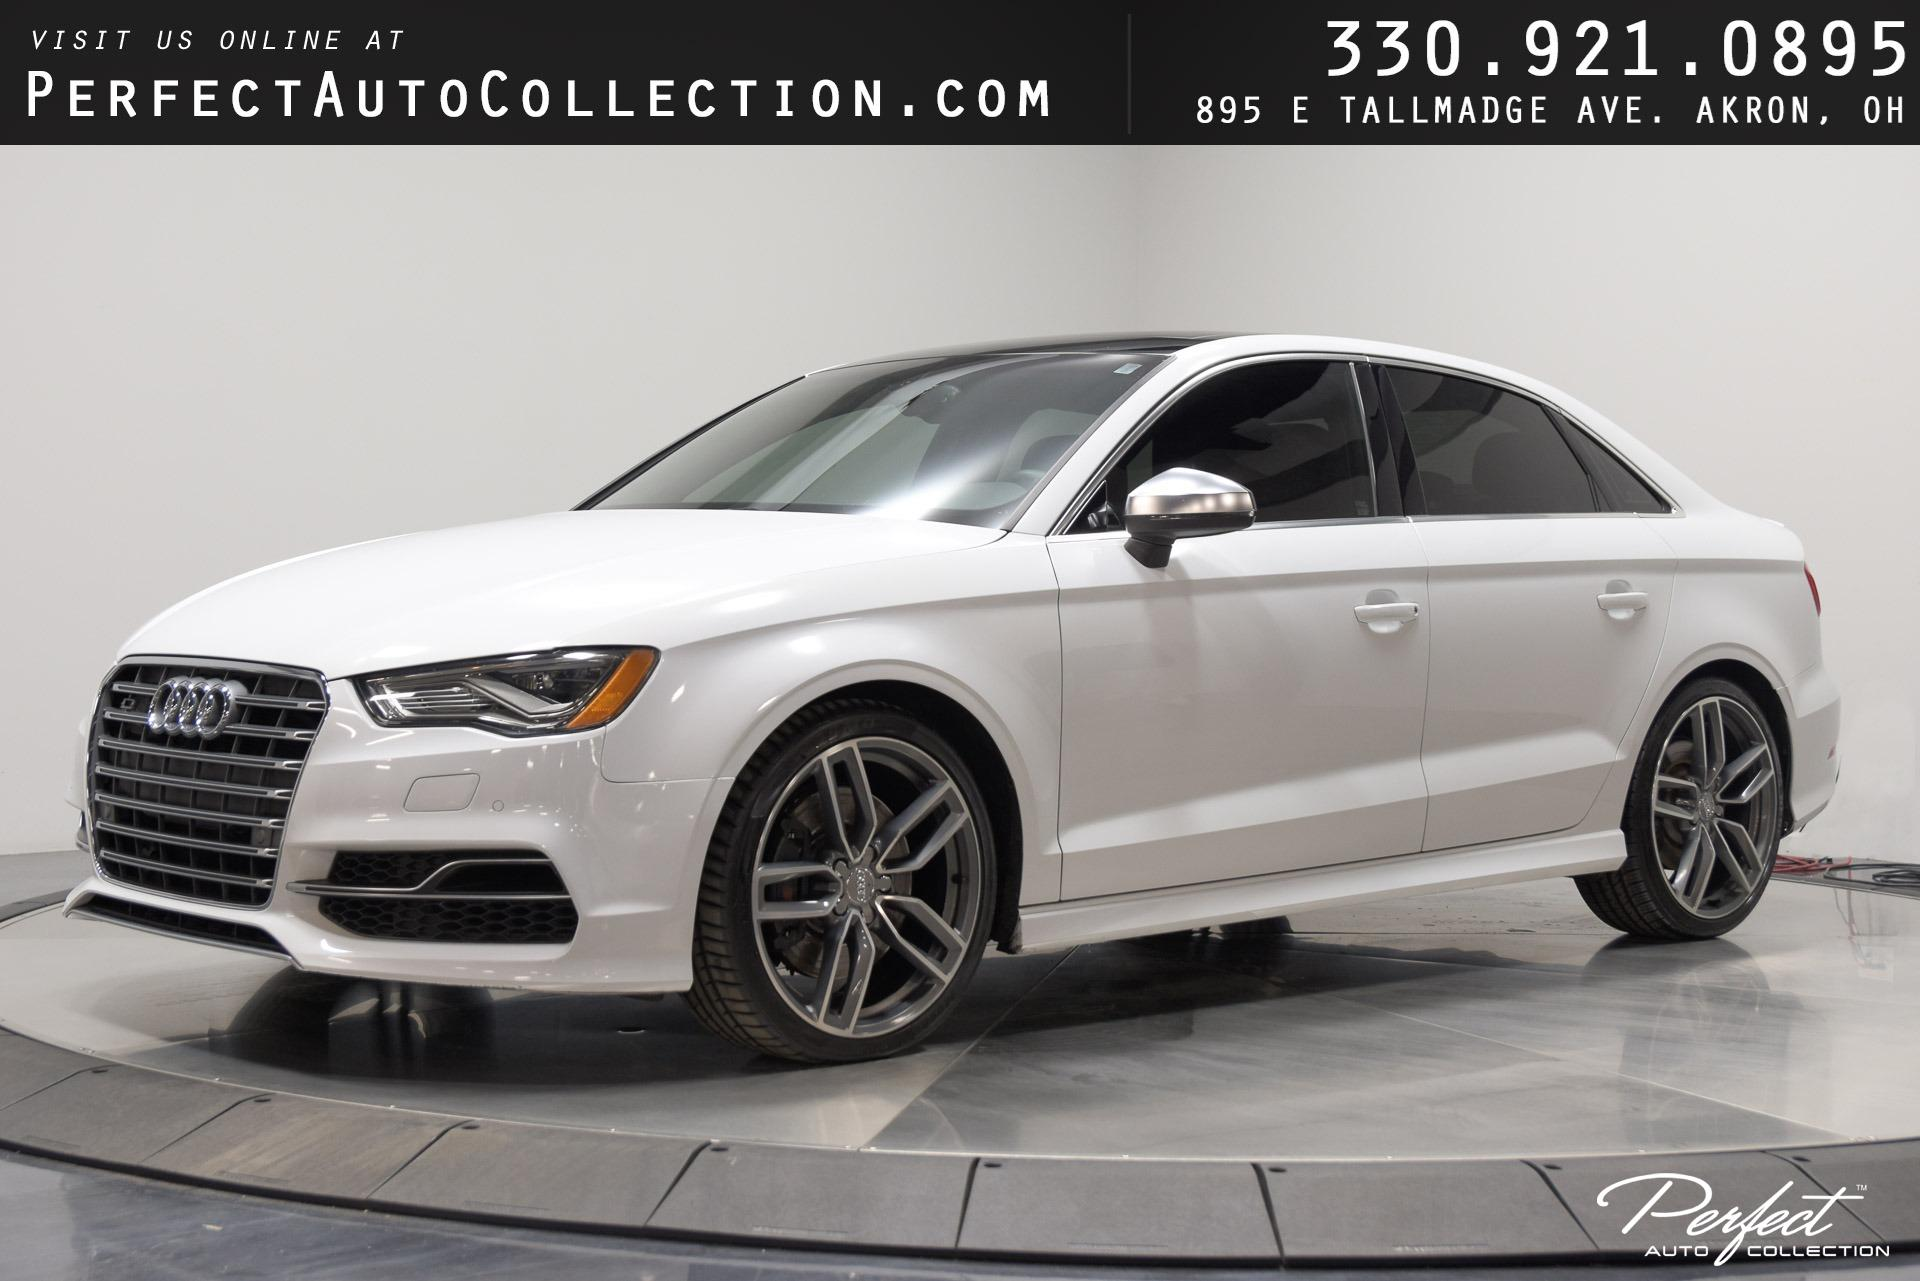 Used 2015 Audi S3 2.0T quattro Prestige for sale $29,495 at Perfect Auto Collection in Akron OH 44310 1